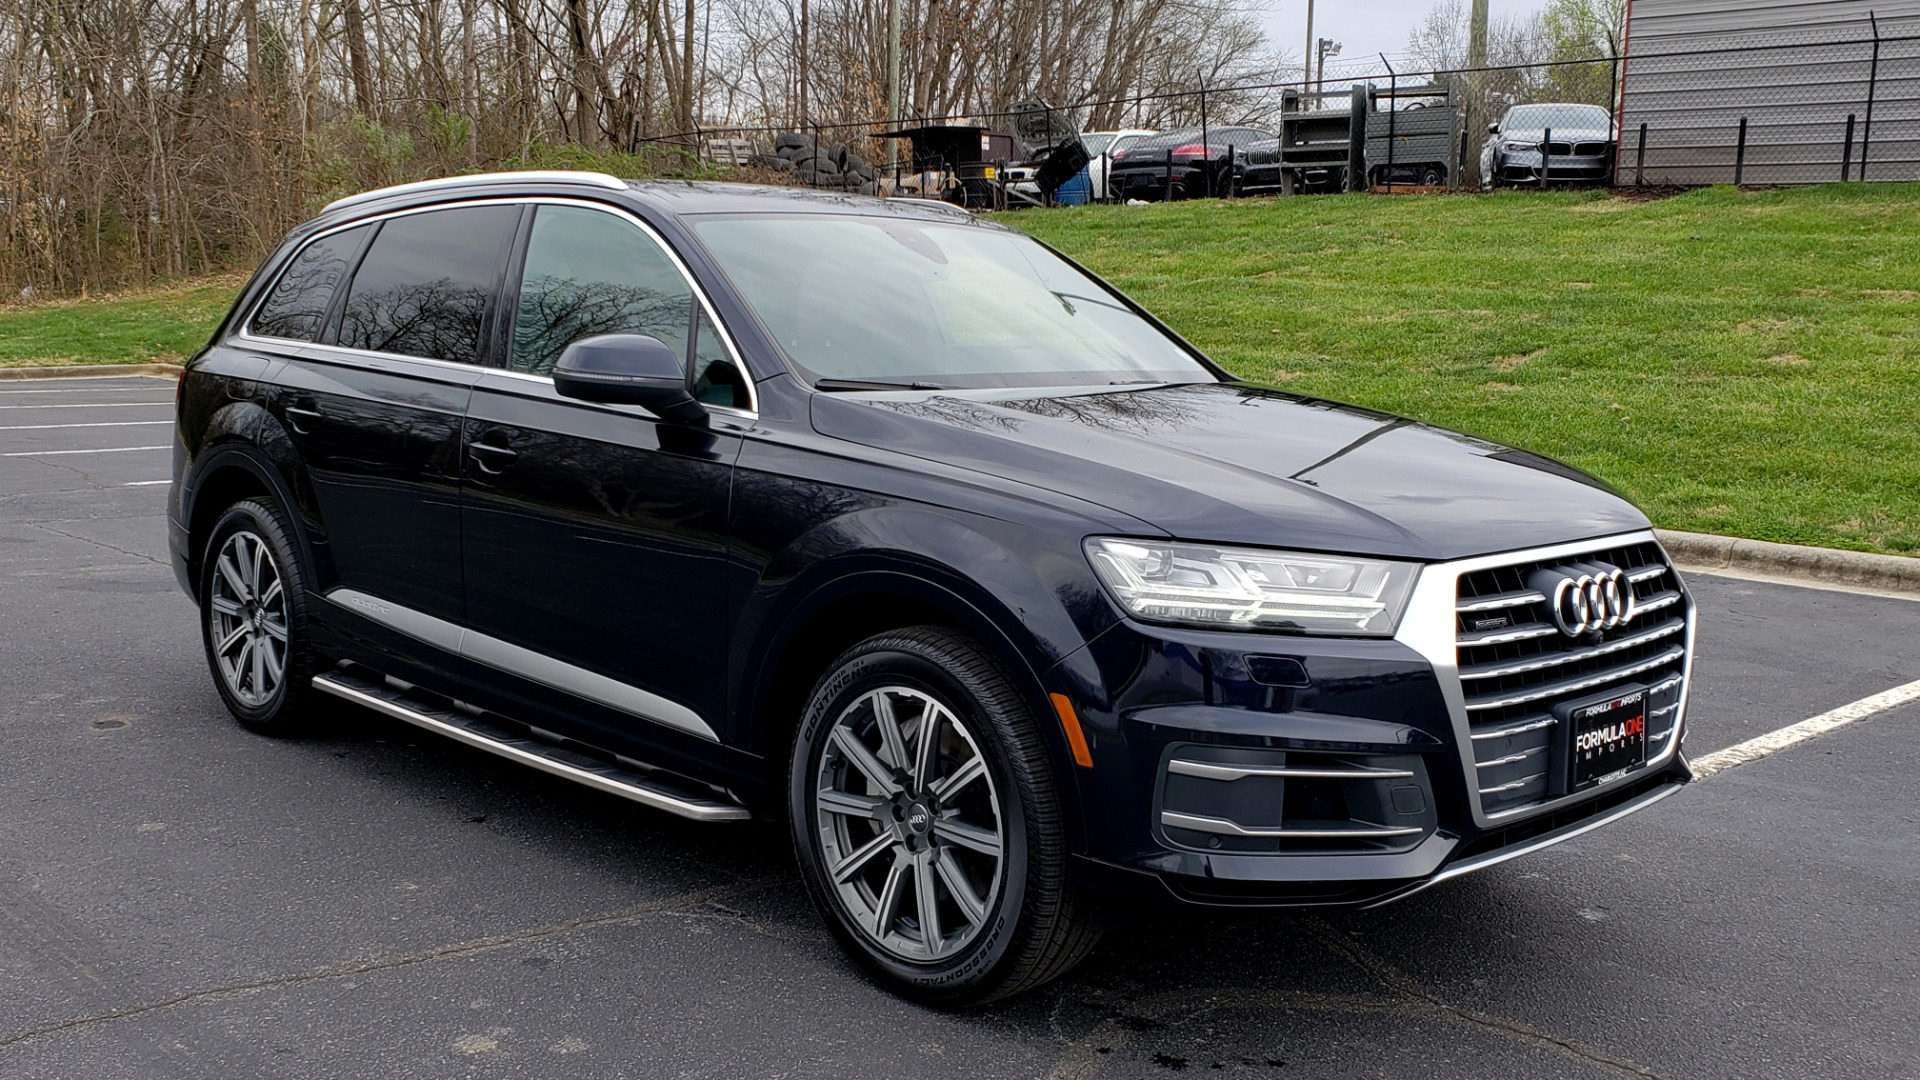 Used 2017 Audi Q7 PRESTIGE 3.0T / AWD / NAV / PANO-ROOF / HTD STS / BOSE / VISION for sale Sold at Formula Imports in Charlotte NC 28227 4